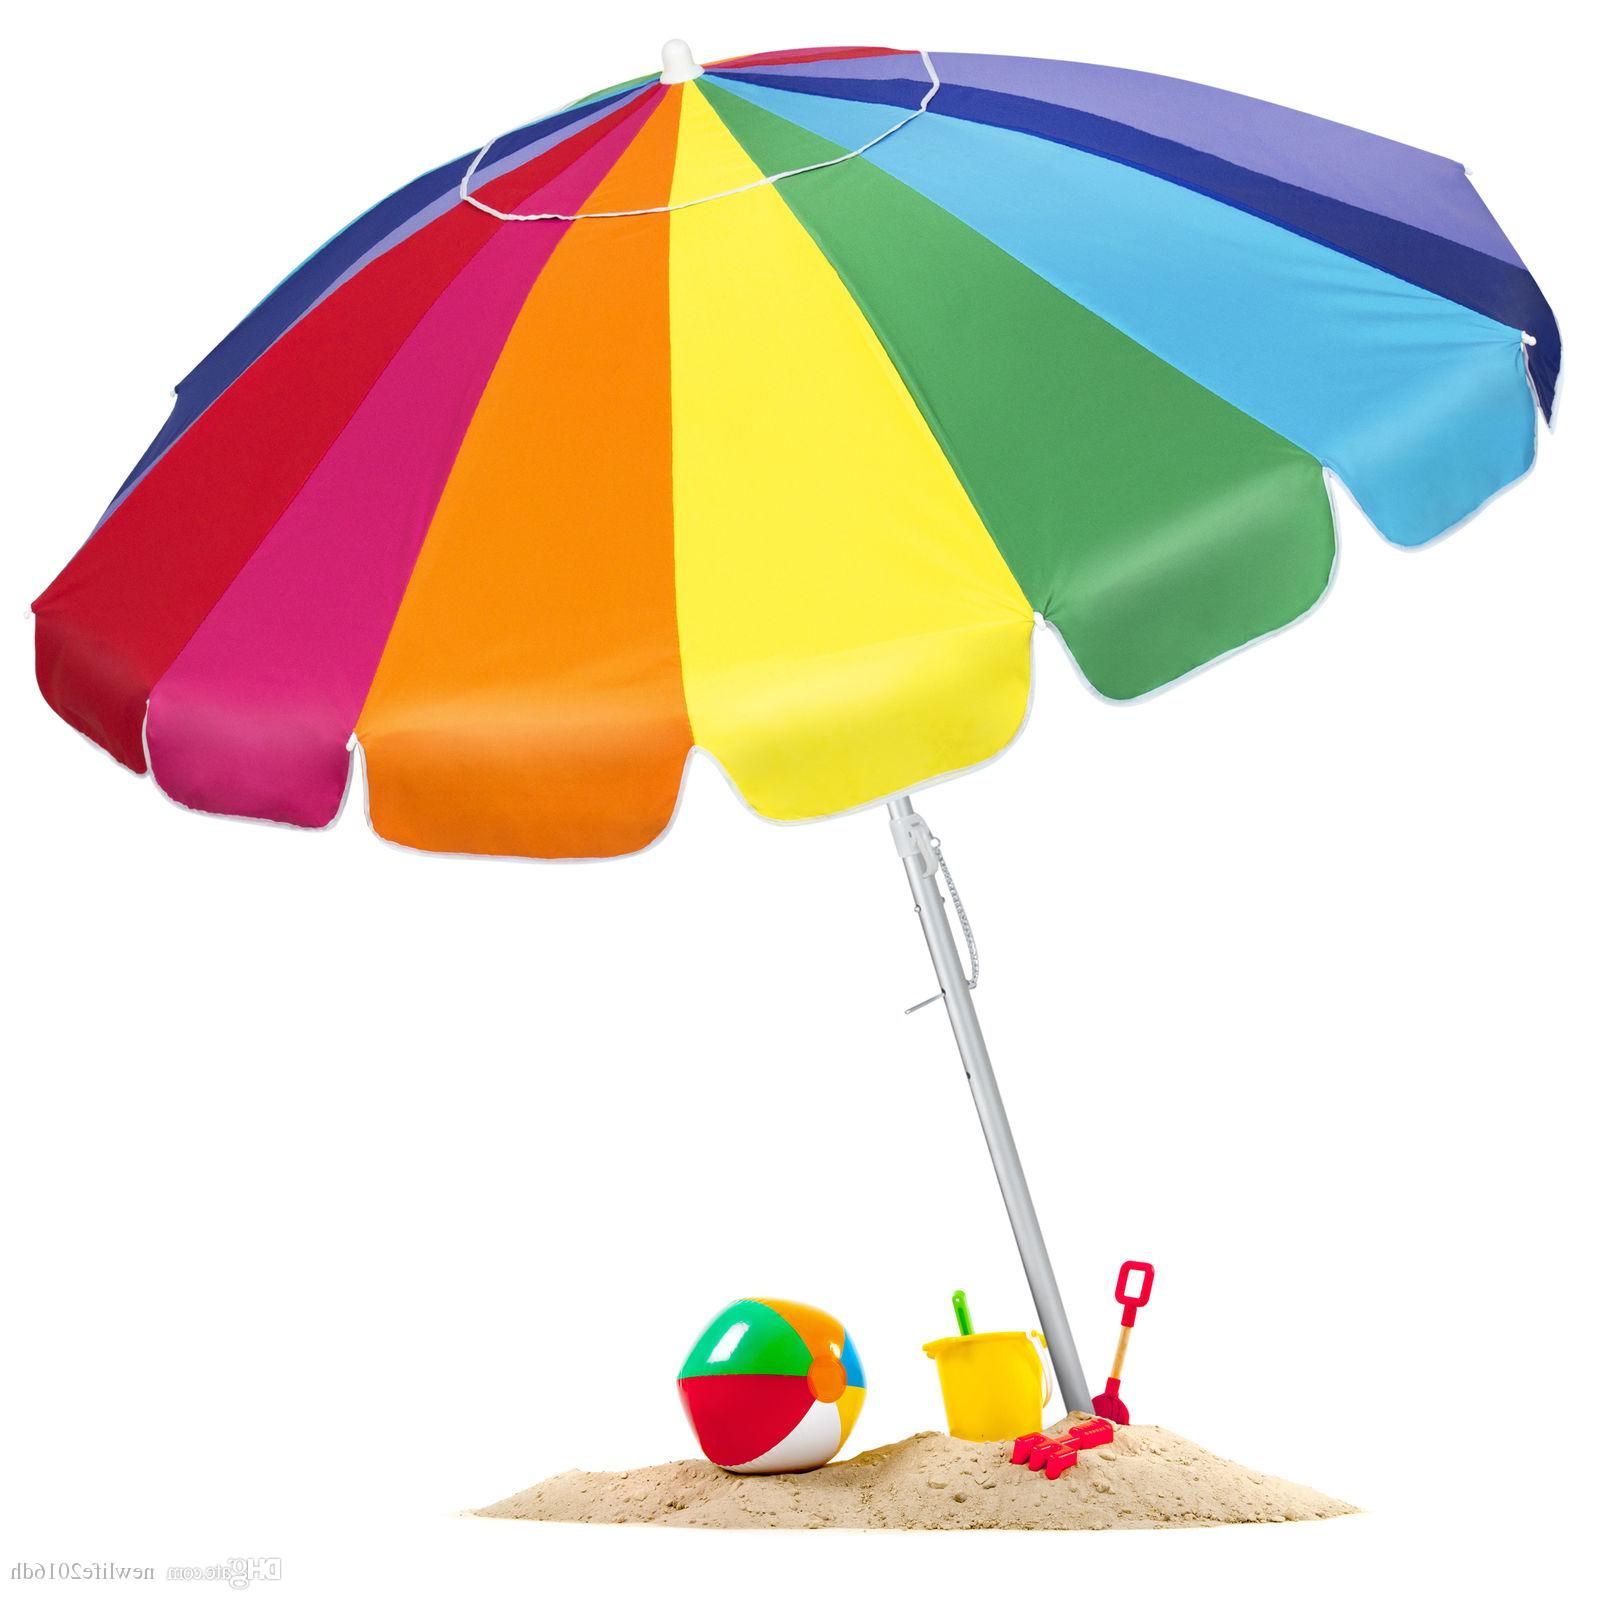 2020 Tilt Beach Umbrellas Intended For Bcp Tilt Rainbow Beach Umbrella W/ Carrying Case & Anchor – Multiple Sizes (Gallery 6 of 20)